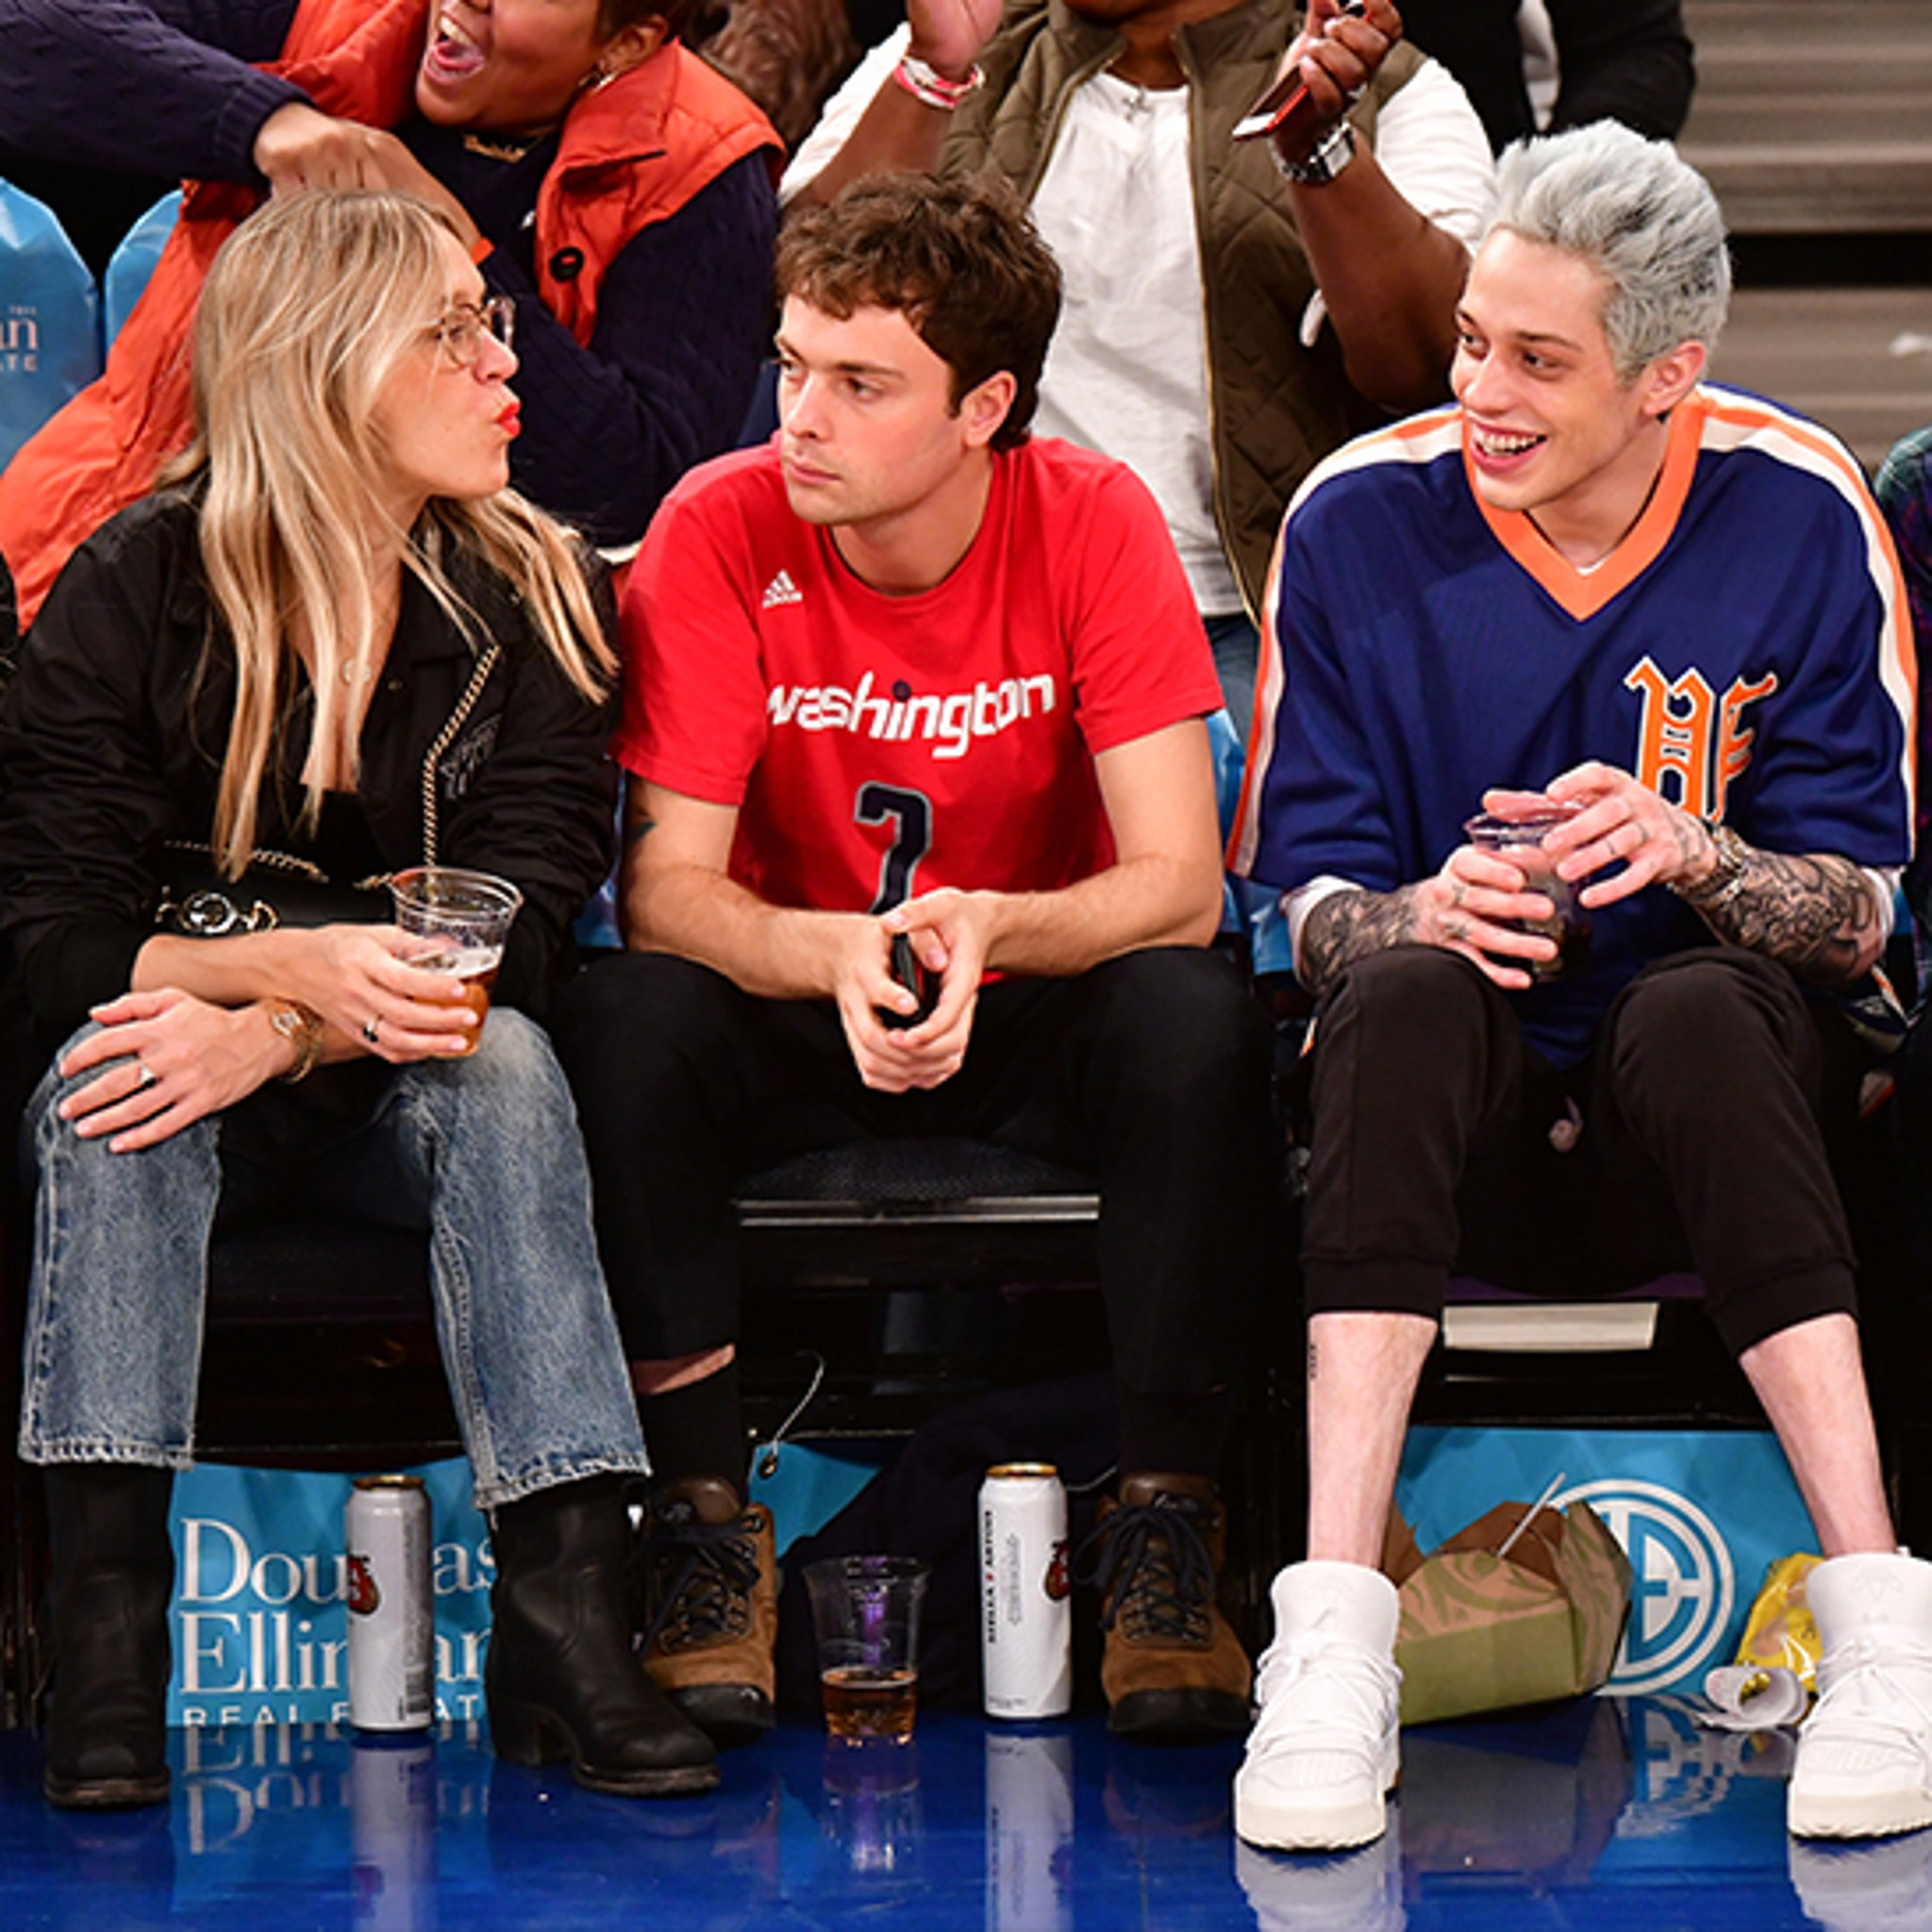 Pete Davidson Looks Happy at Knicks Game After Addressing